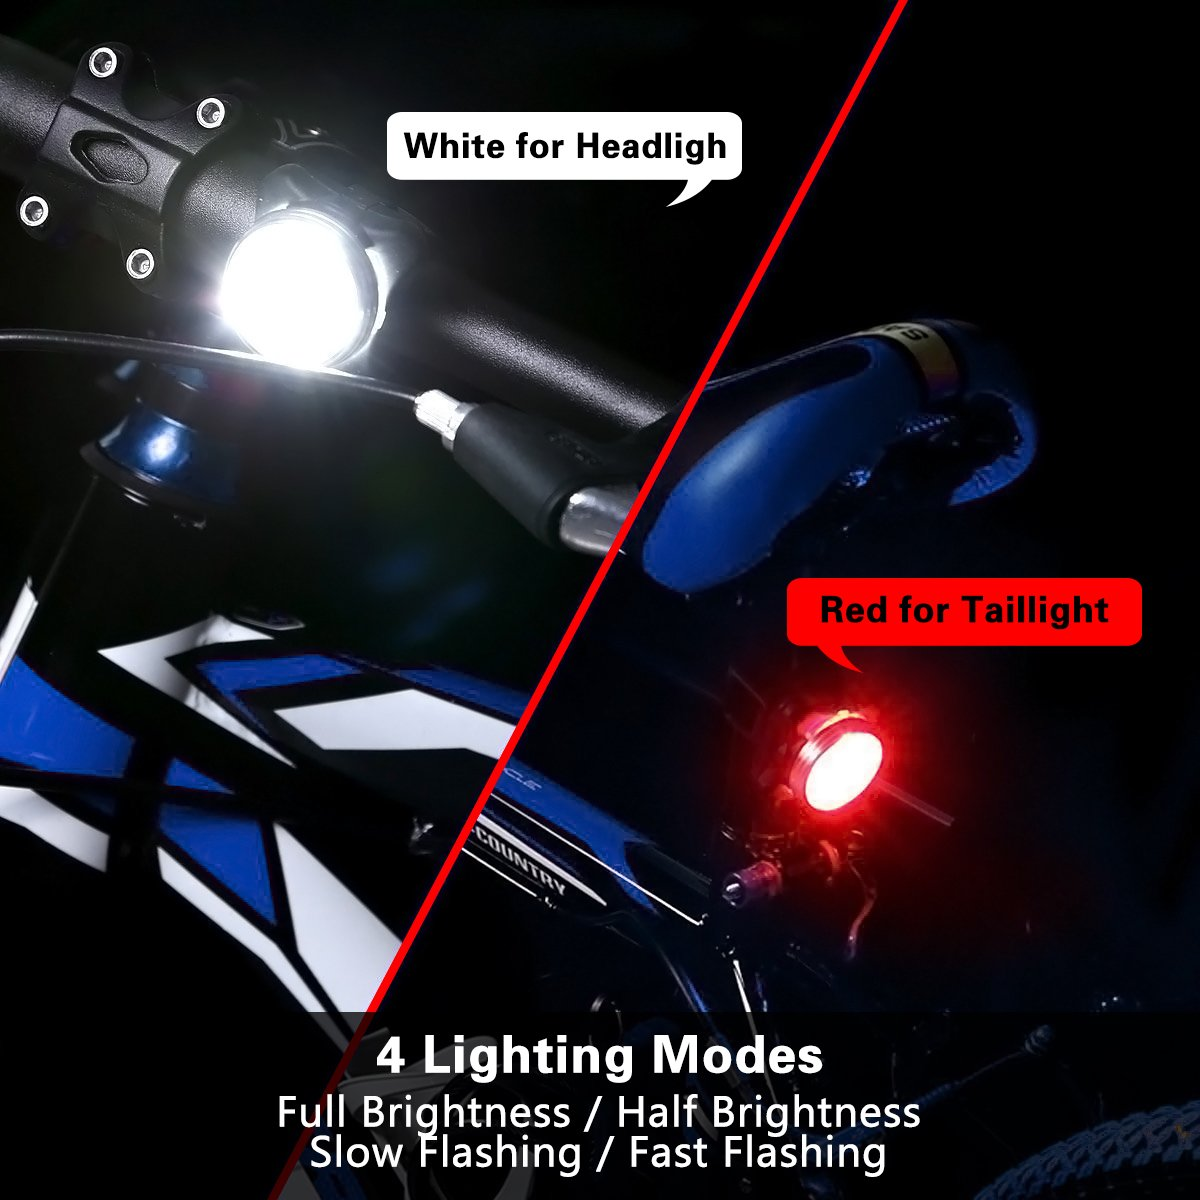 Rechargeable LED Bike Lights Set, FuPany Waterprooof Bicycle Headlight(White) Taillight(Red) Combinations LED Front Back Cycling Flashlights Head Rear Lamp, 4 Light Modes, 2 USB Cables